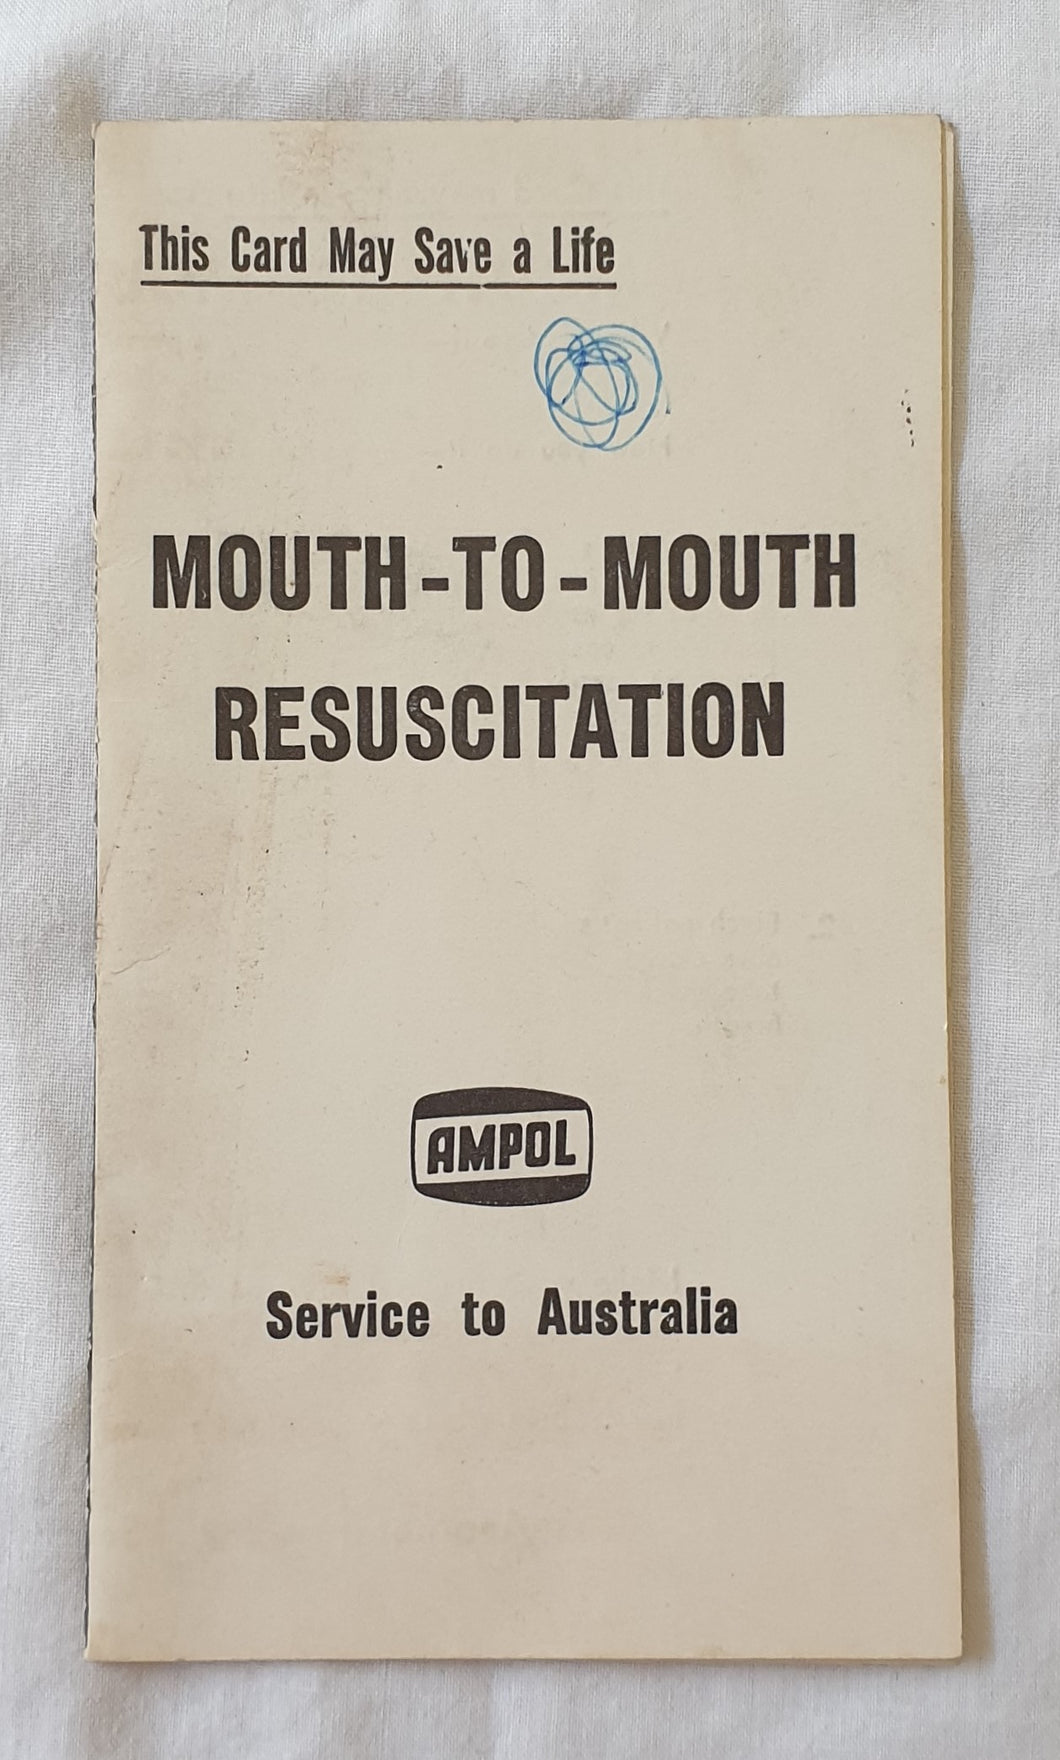 Mouth-To-Mouth Resuscitation Ampol Community Safety Card